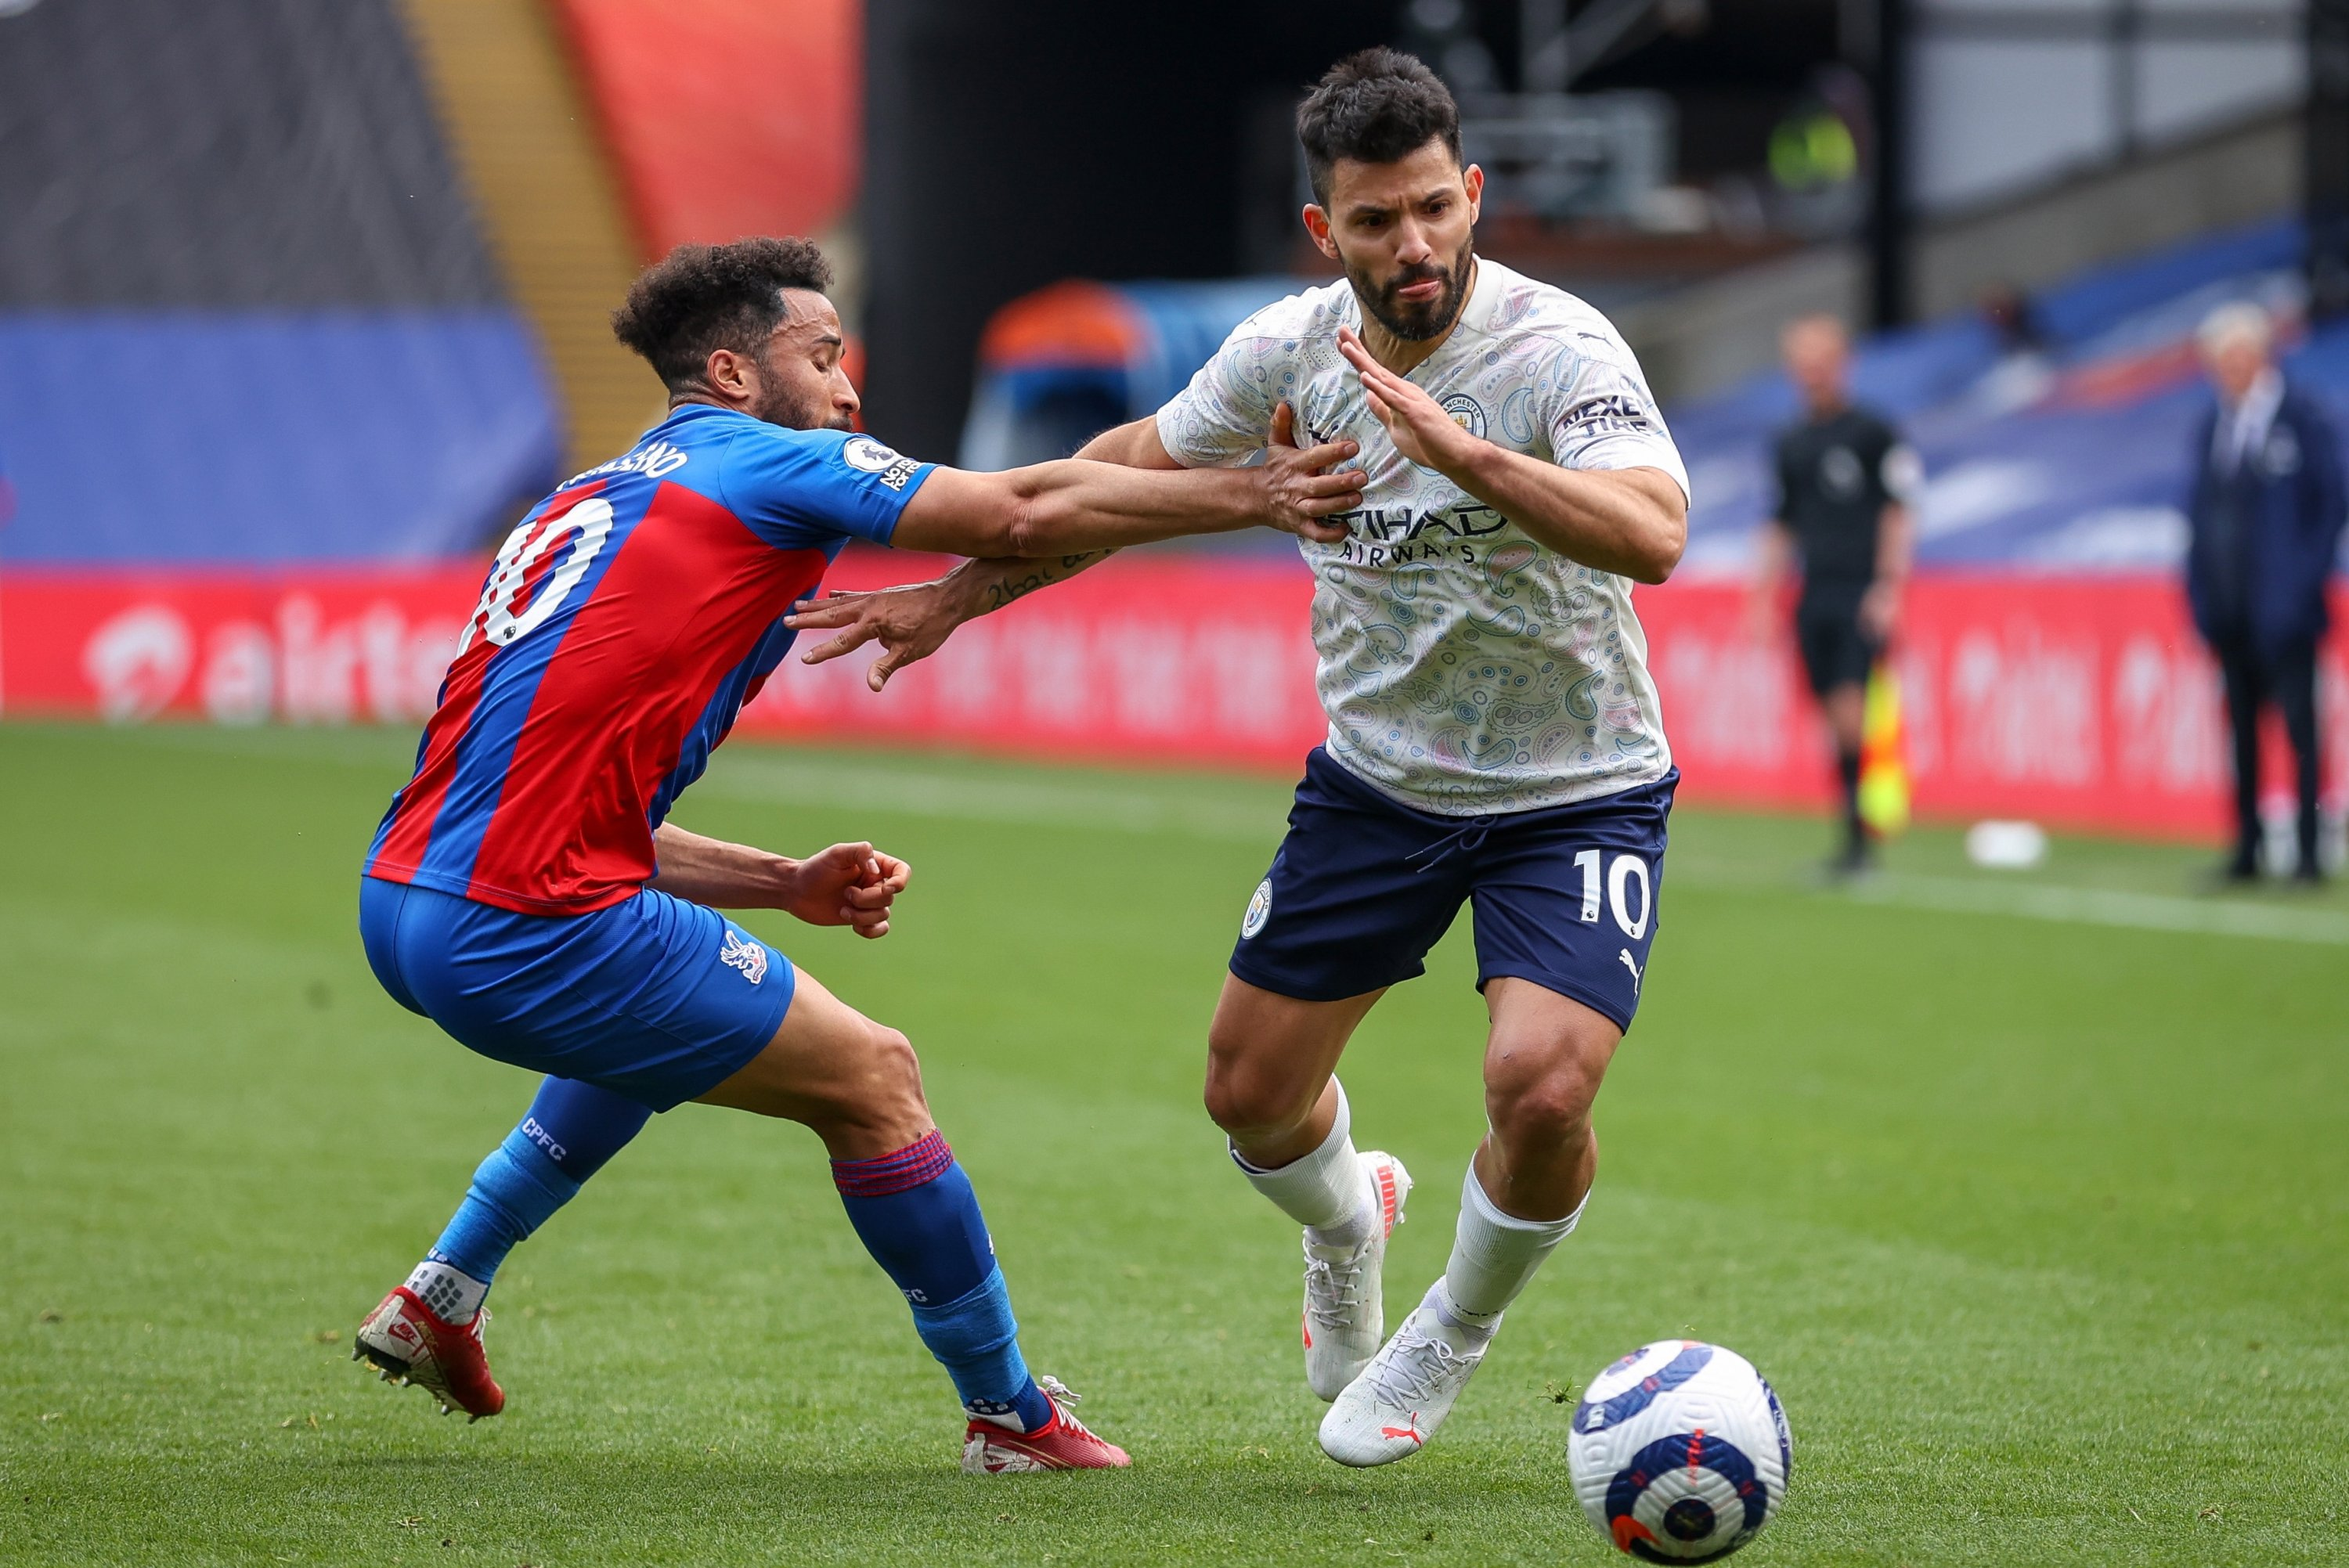 Andros Townsend (L) of Crystal Palace in action against Sergio Aguero of Manchester City during the English Premier League soccer match in London, Britain, May 1, 2021. (EPA/Catherine Ivill/Pool)